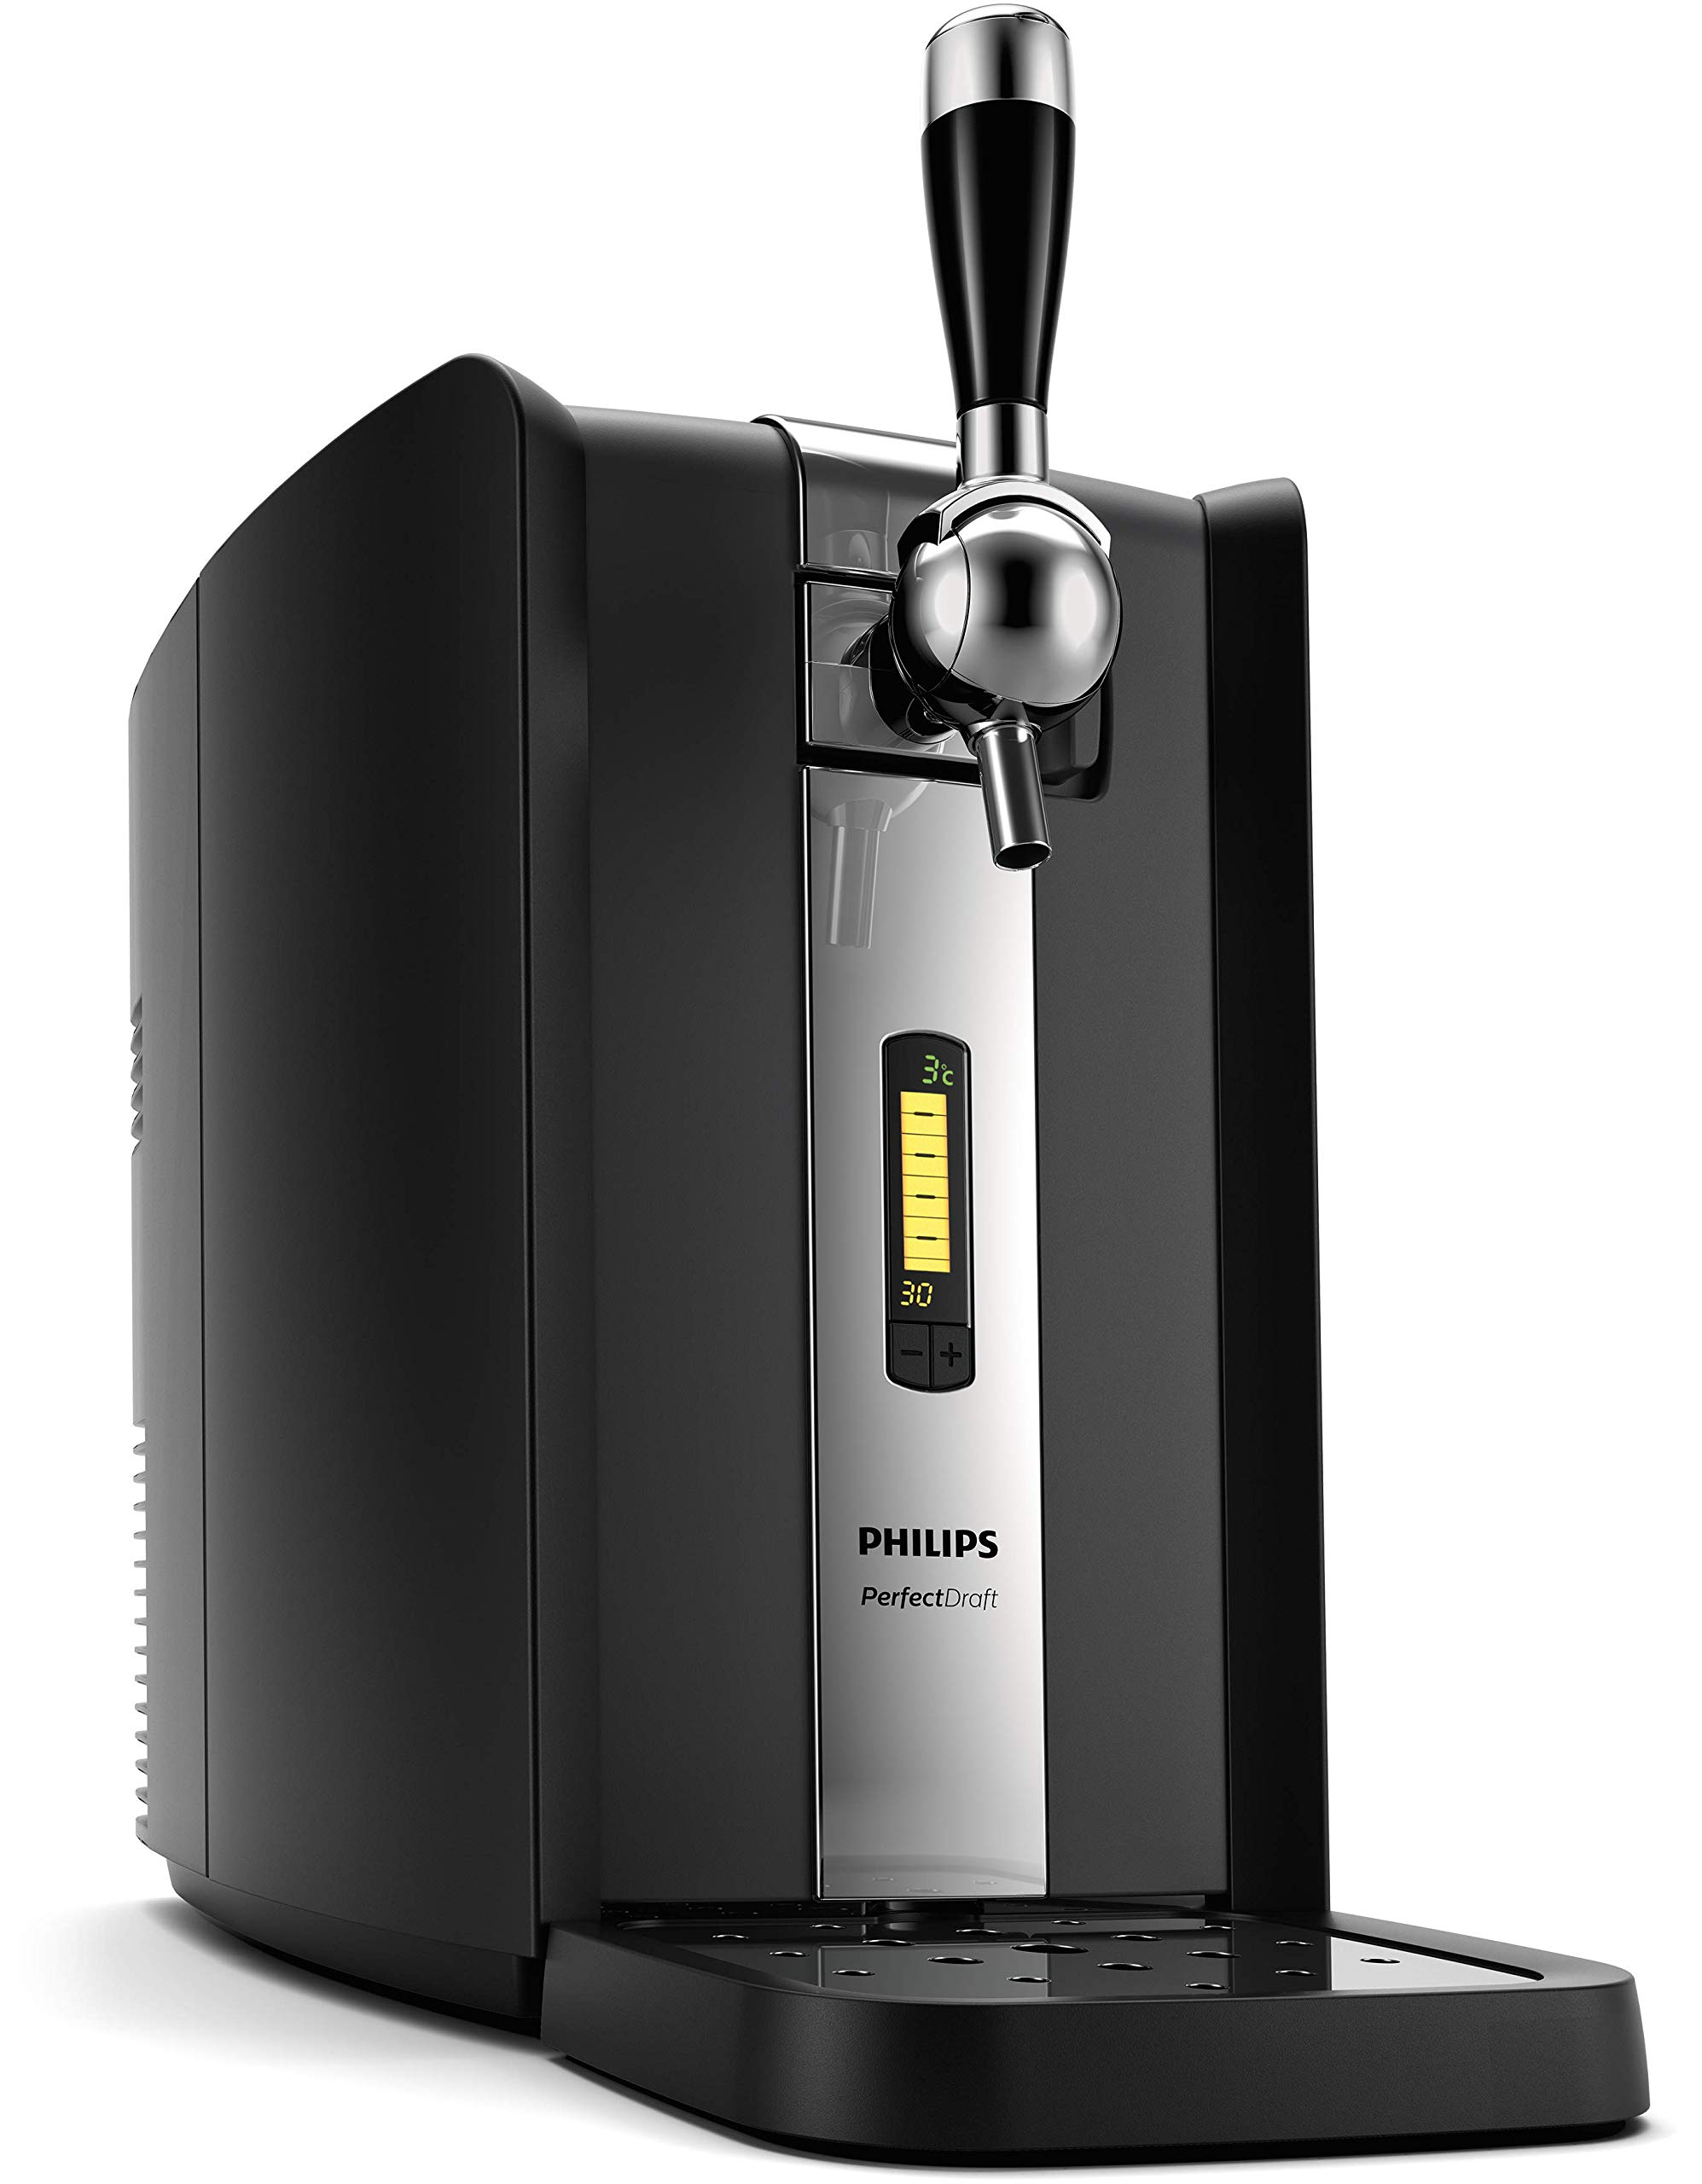 Philips PerfectDraft Keg Machine, HD3720/25 Home Tap, Beer Dispenser, Steel